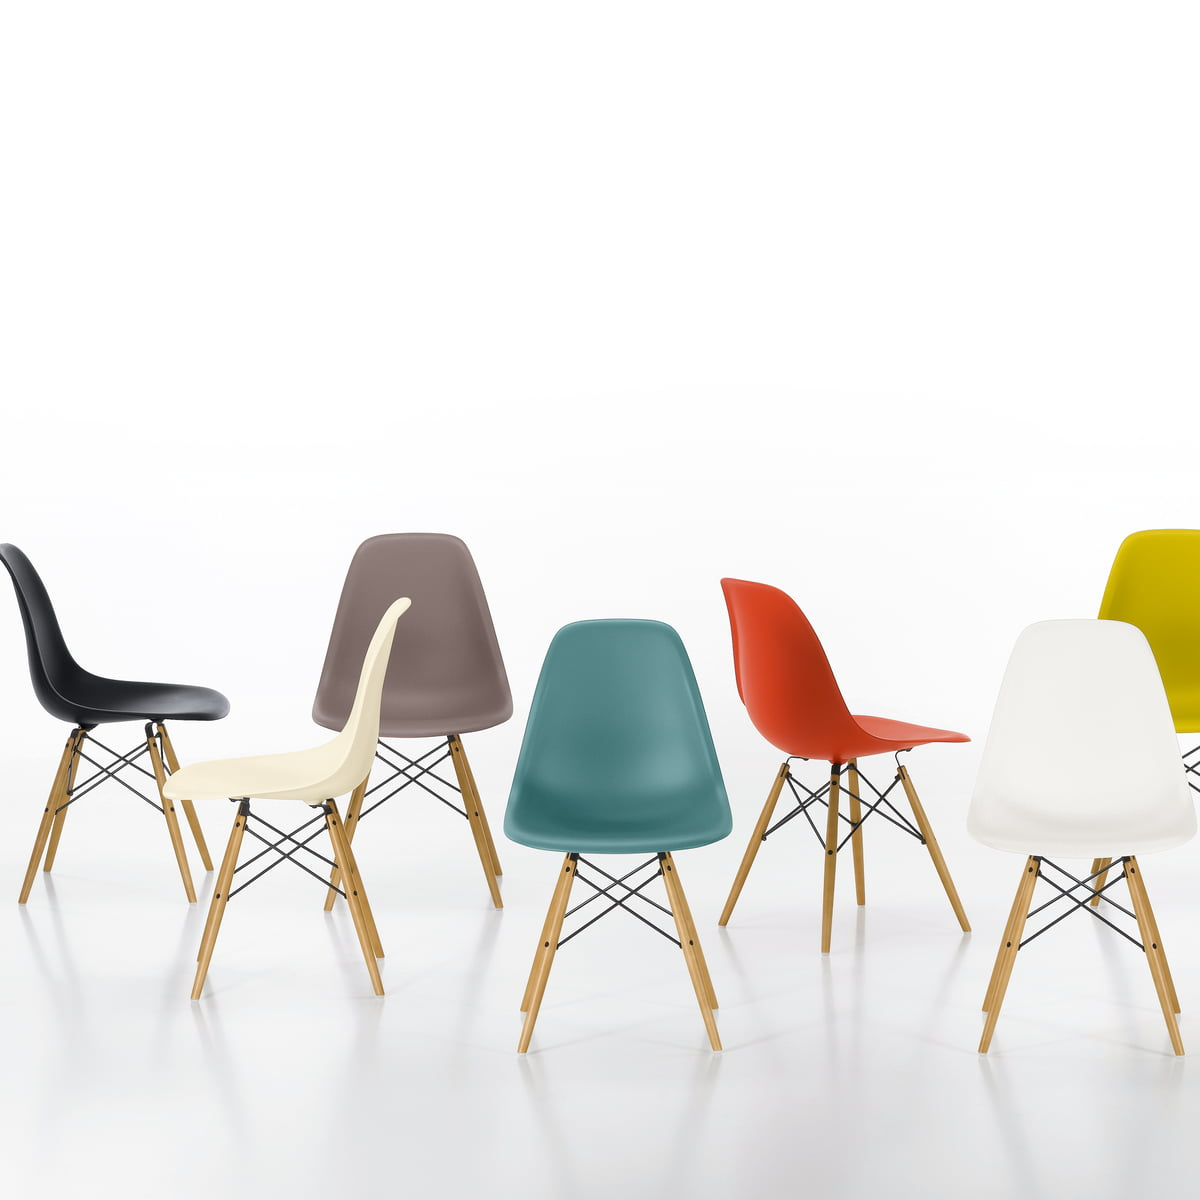 Dsw Different Models Image Eames ChairEames Dsw Chair Green   grafill us. Eames Dsw Chair Green. Home Design Ideas